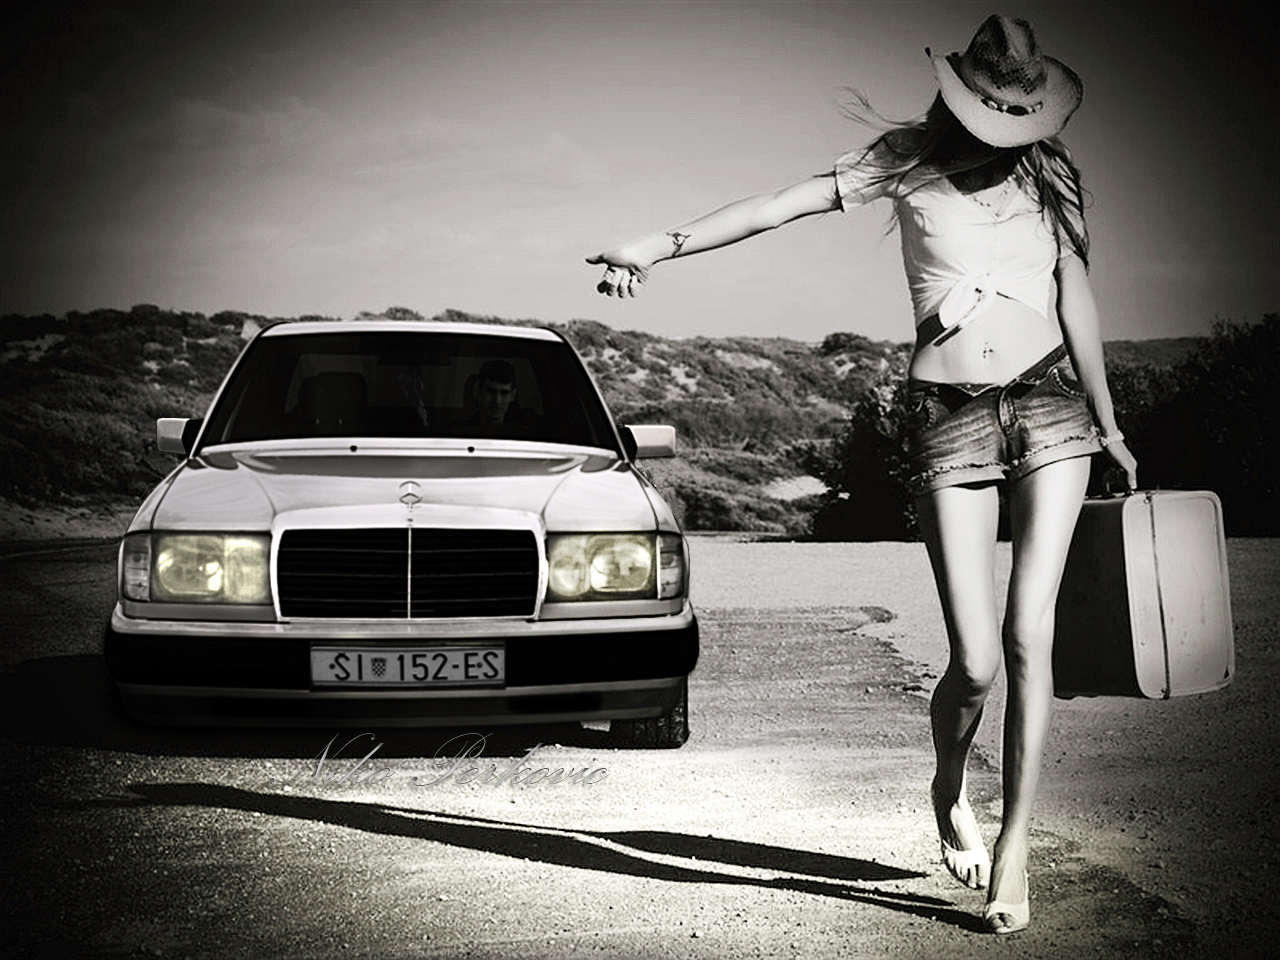 Corvette Girl Wallpaper Mercedes W124 Wallpapers Mercedes W124 Stock Photos